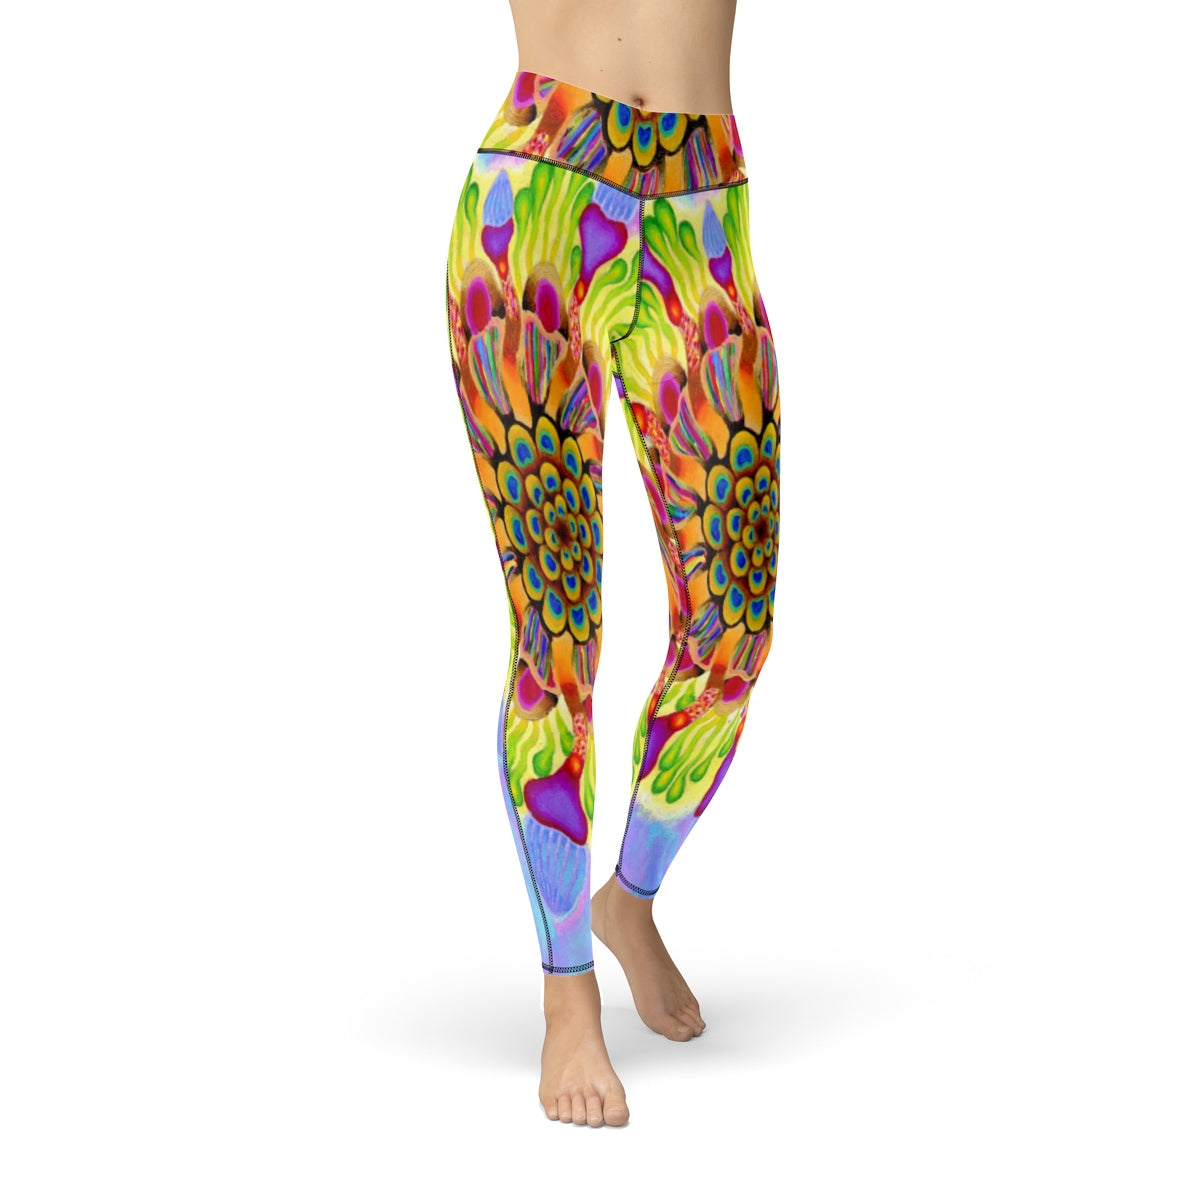 Popping Boba Cut & Sew Sport Leggings